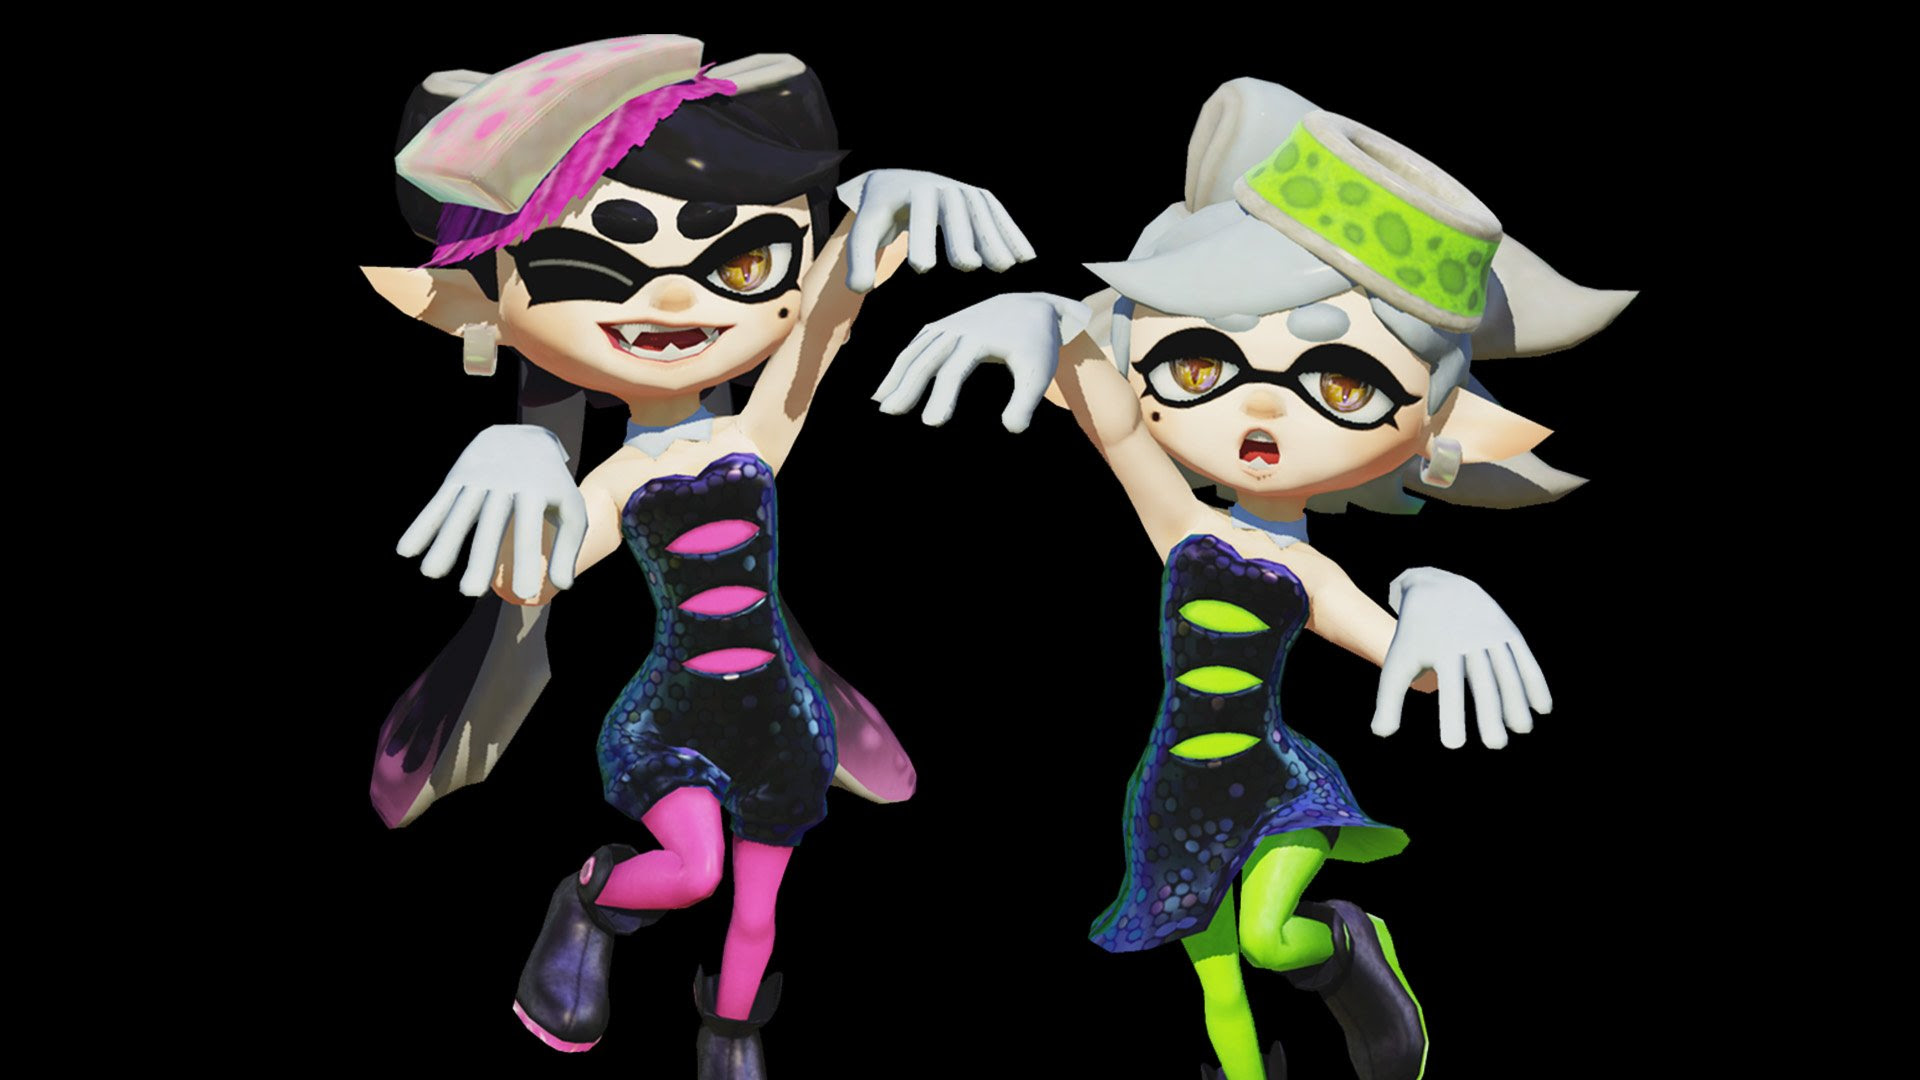 Splatoon 2's Squid Sister prologue just finished, setting the stage for the sequel screenshot